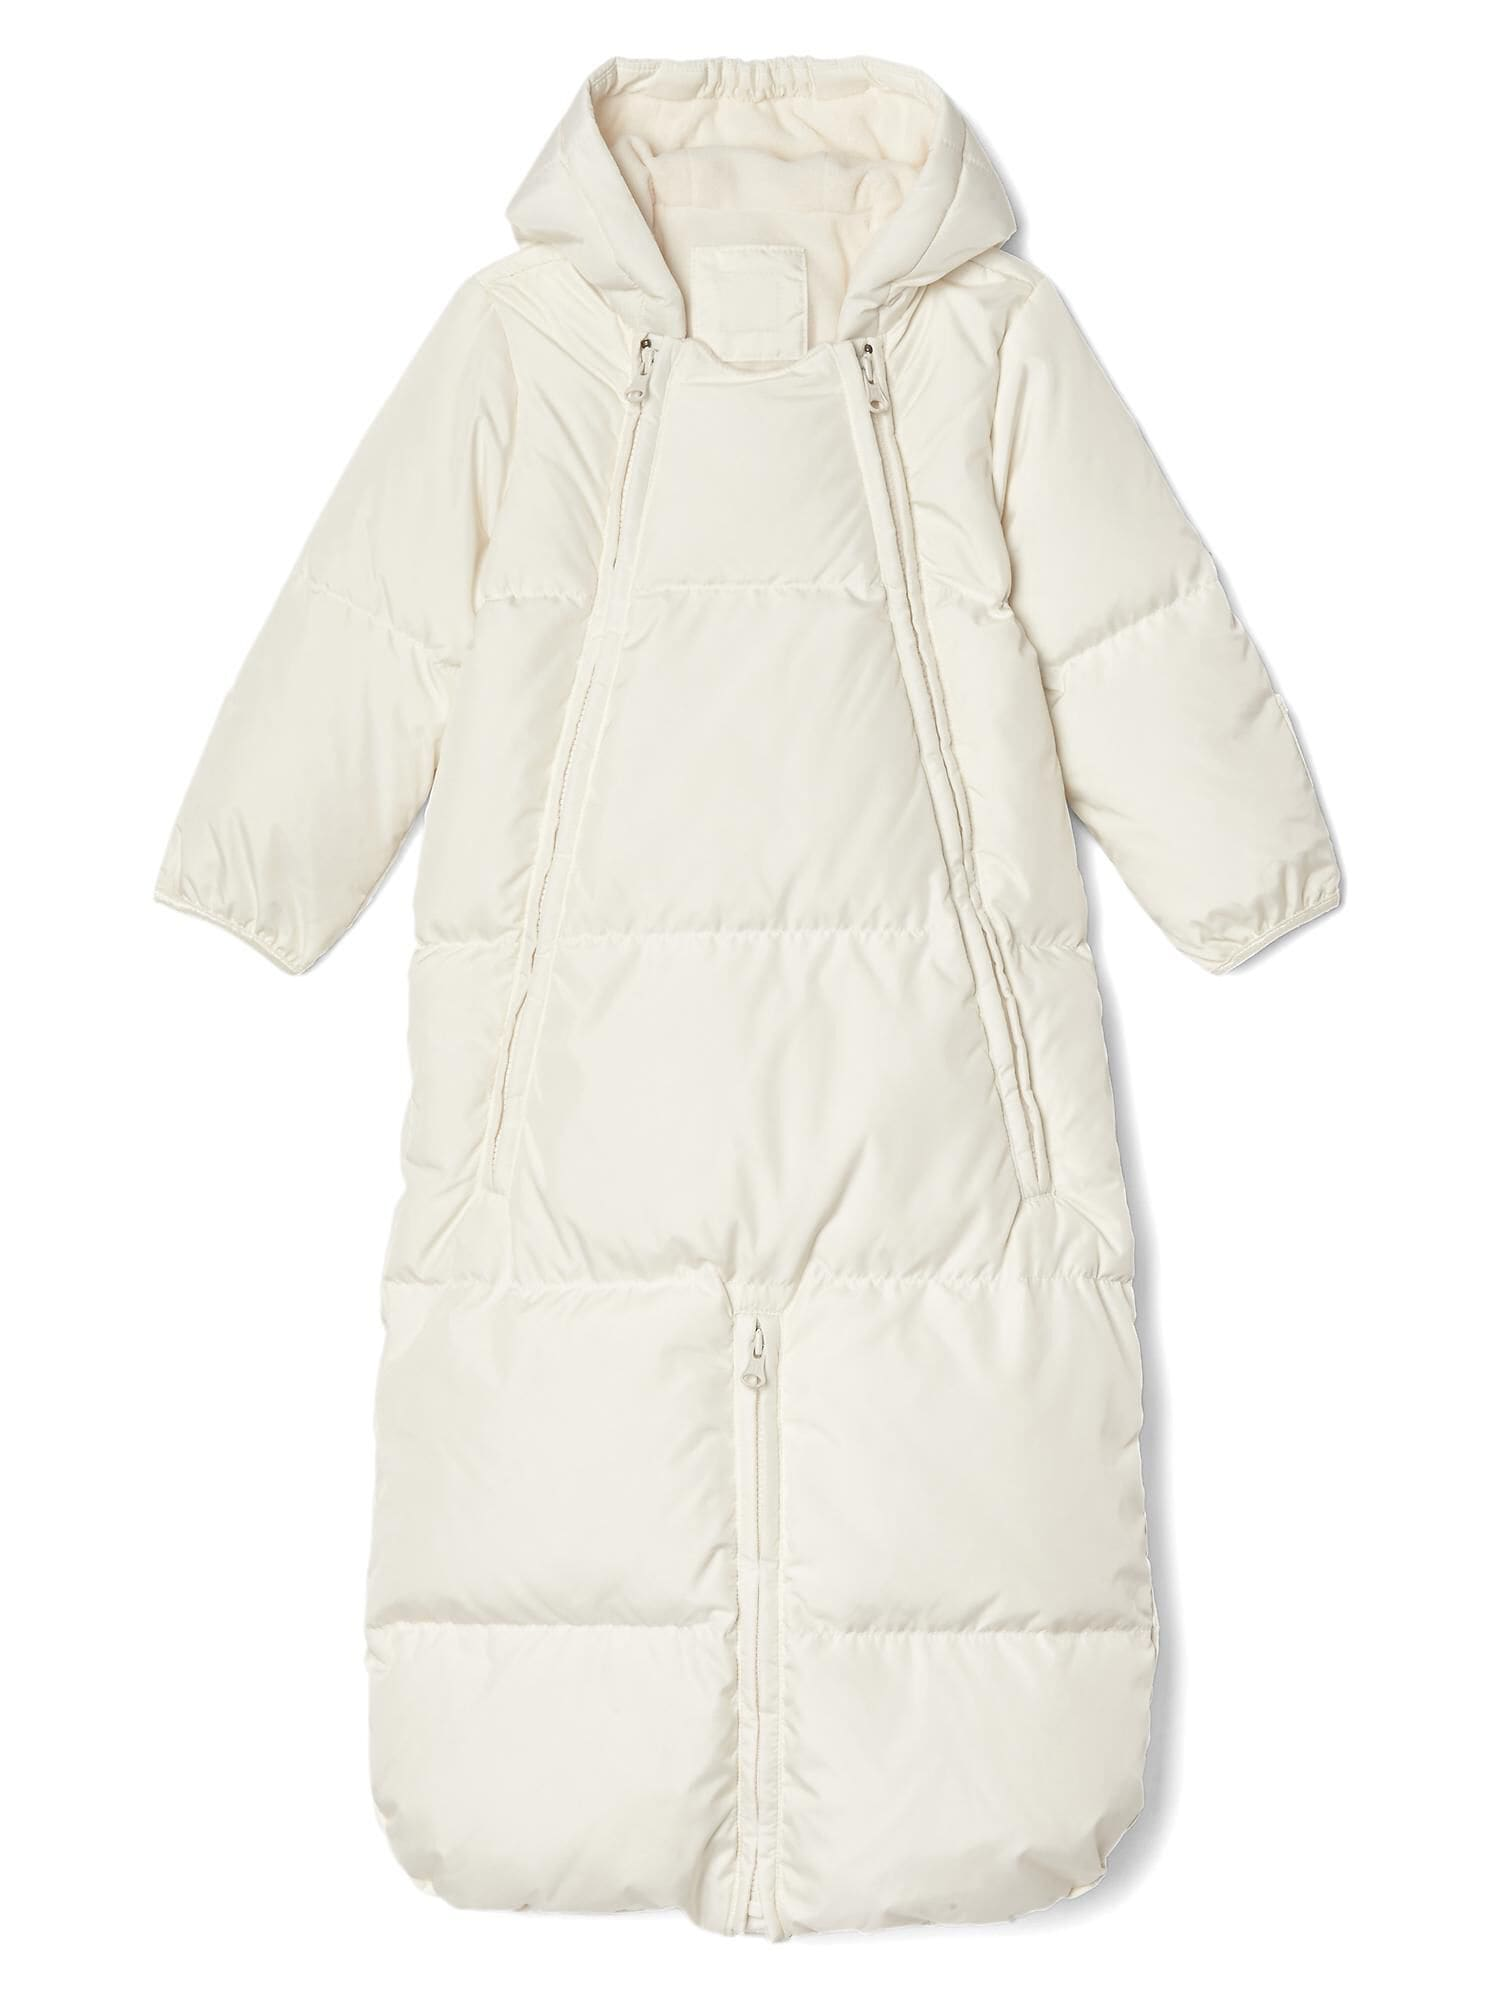 f62caafb3 so cheap 63407 77eee soft fluffy pram suit by gap size up to 3 ...